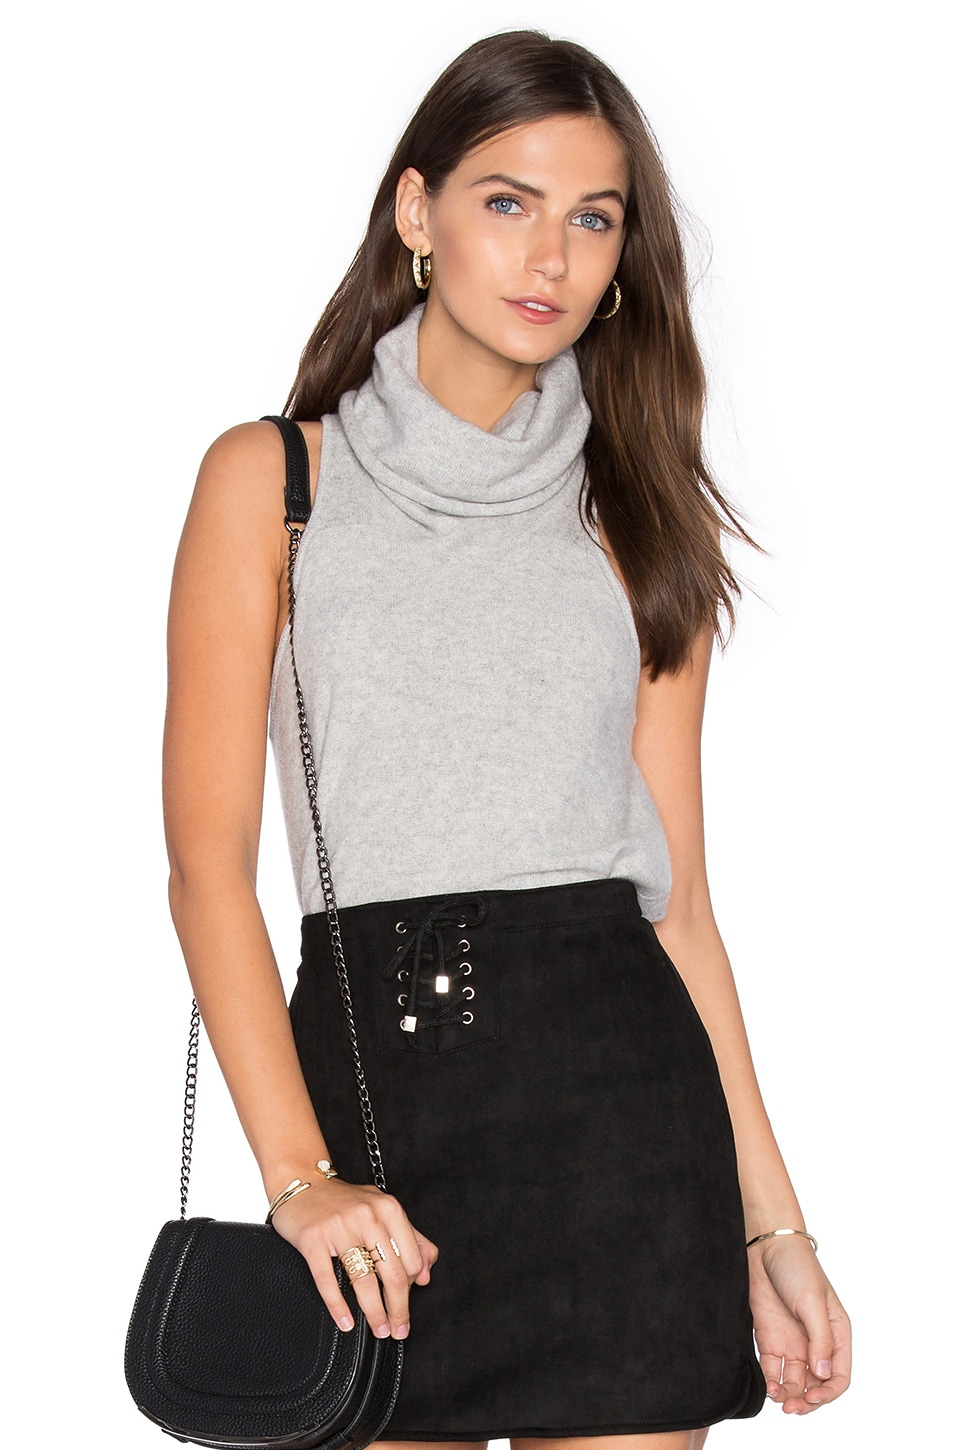 Vienna Cashmere Sleeveless Sweater by Central Park West